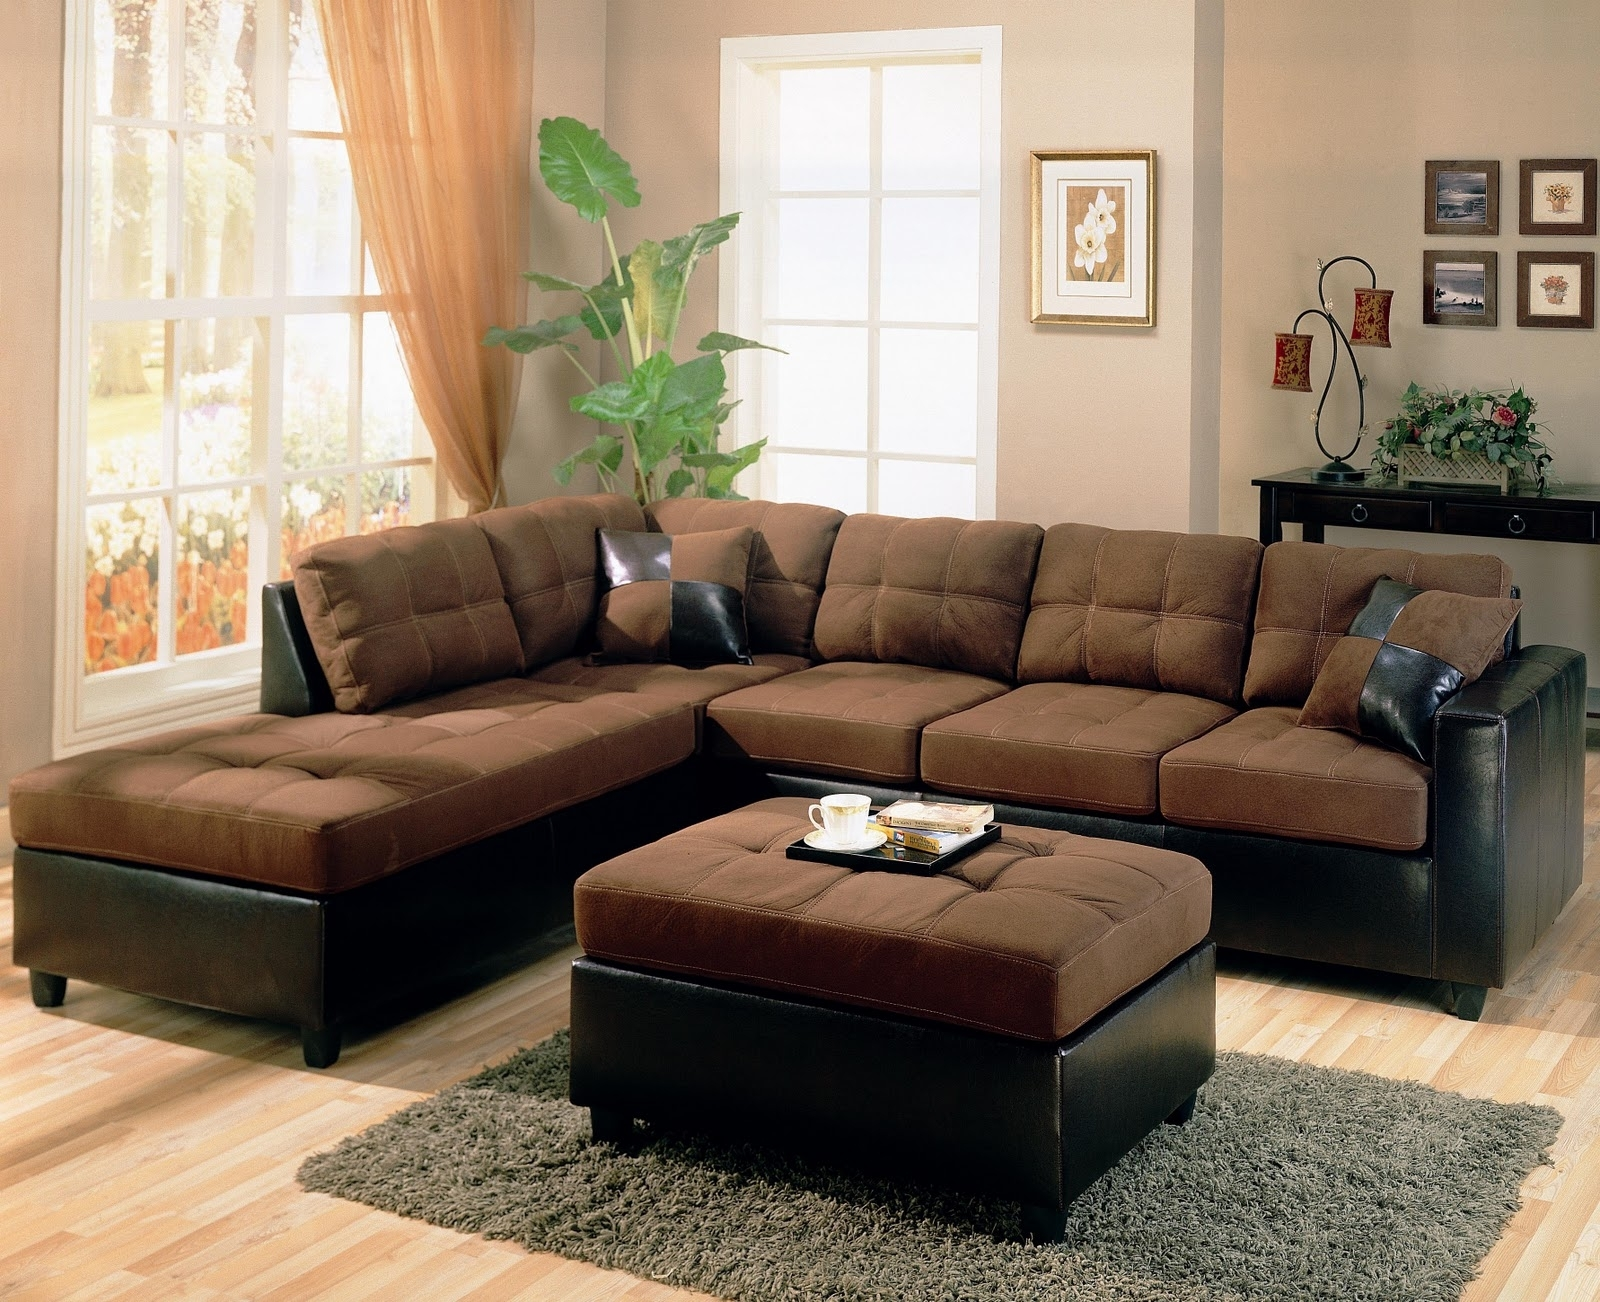 Living Room | Royal Furniture Outlet Throughout Royal Furniture Sectional Sofas (View 4 of 10)